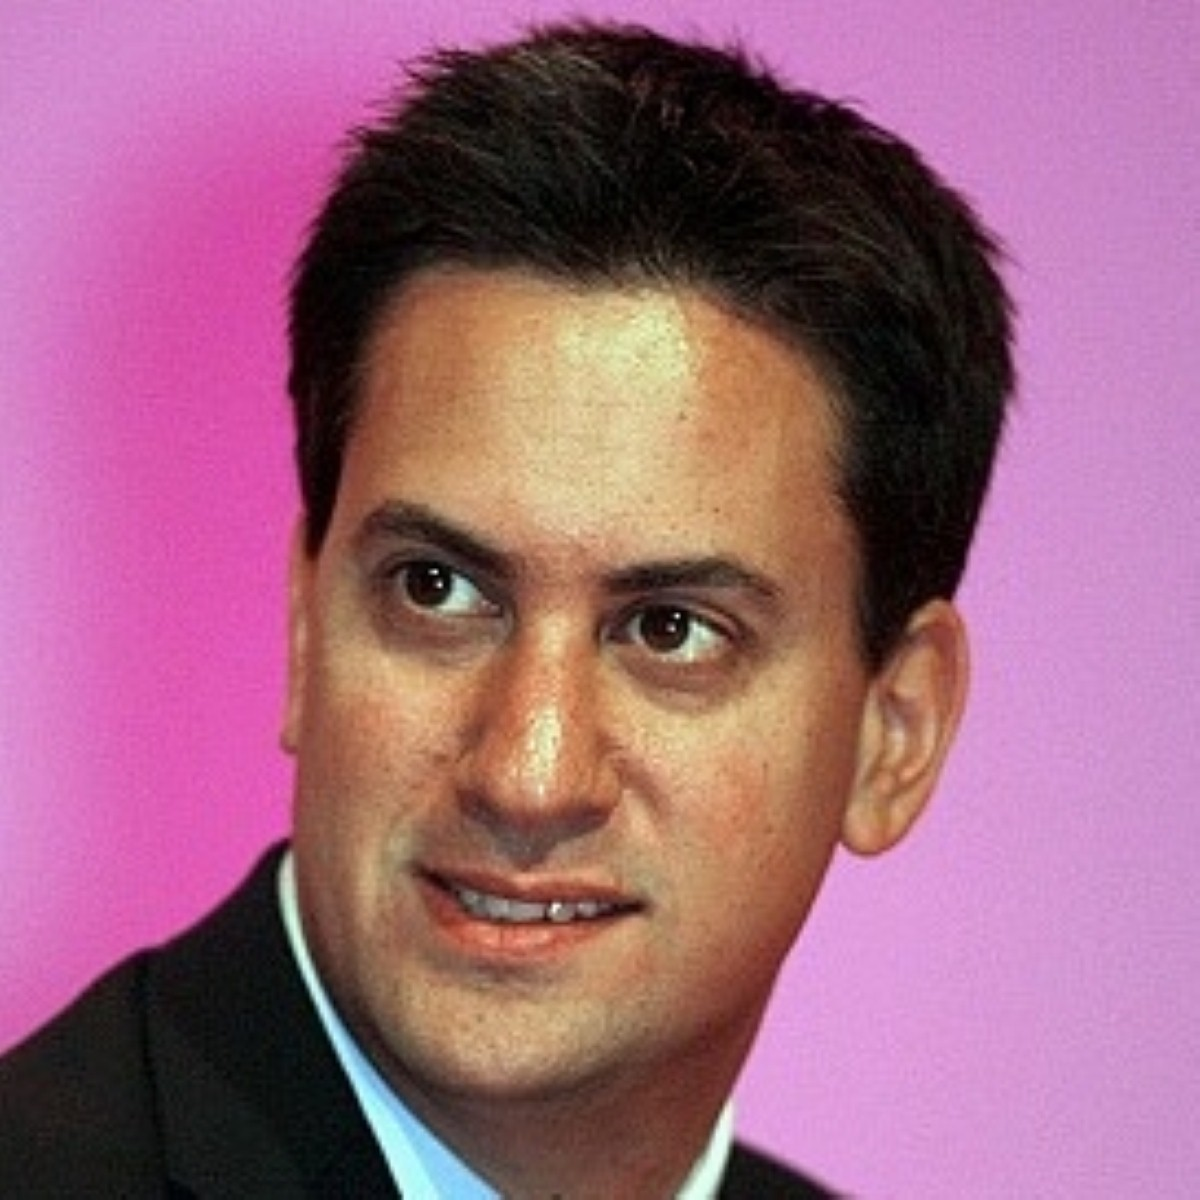 Ed Miliband: 'I passionately believe people do want to be part of better – a better United Kingdom.'